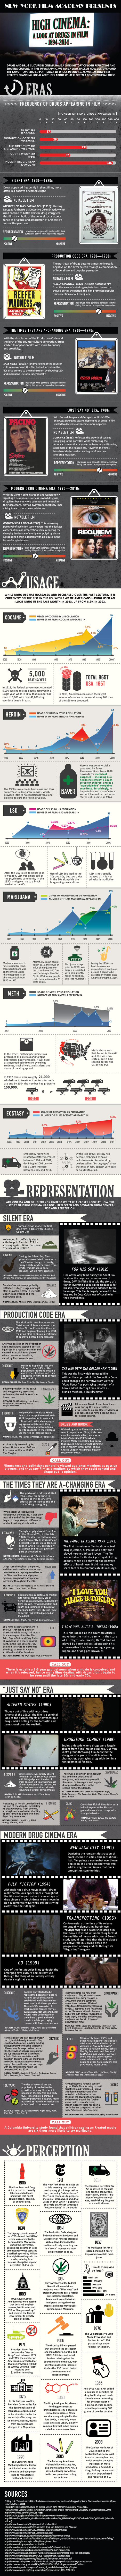 High Cinema Drugs in FIlm Infographic